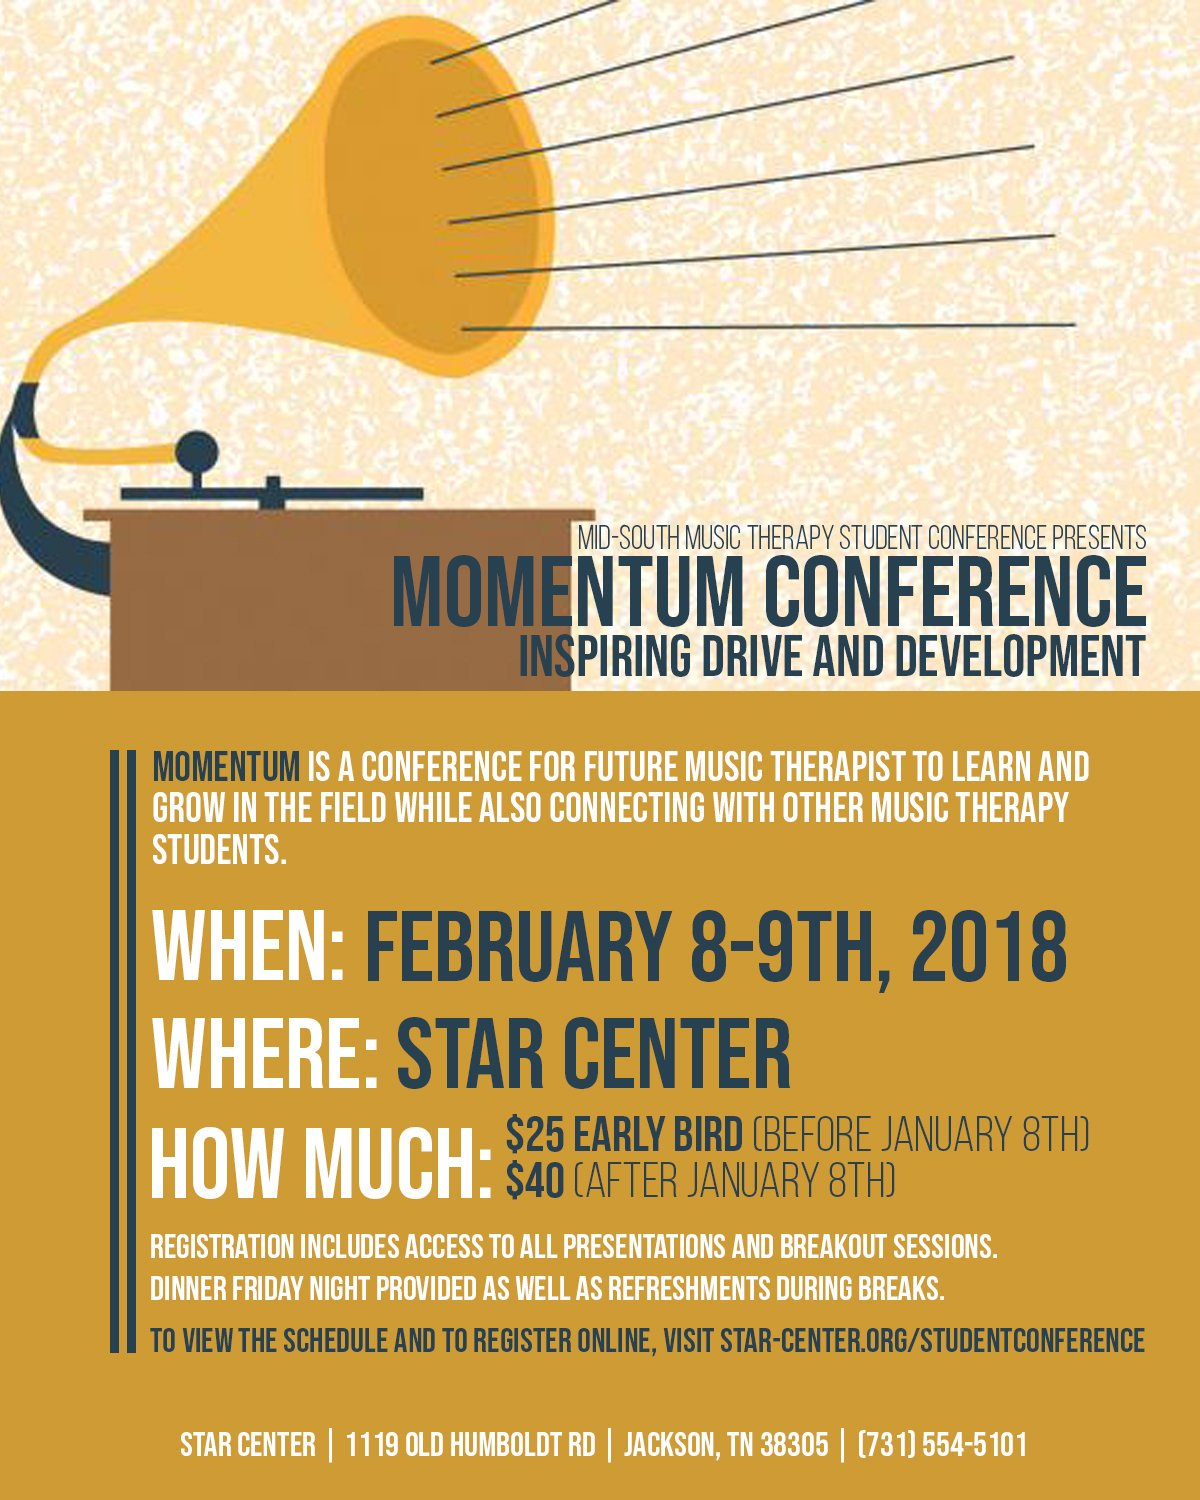 Momentum Conference February 8-9th, 2019. Follow link for information.